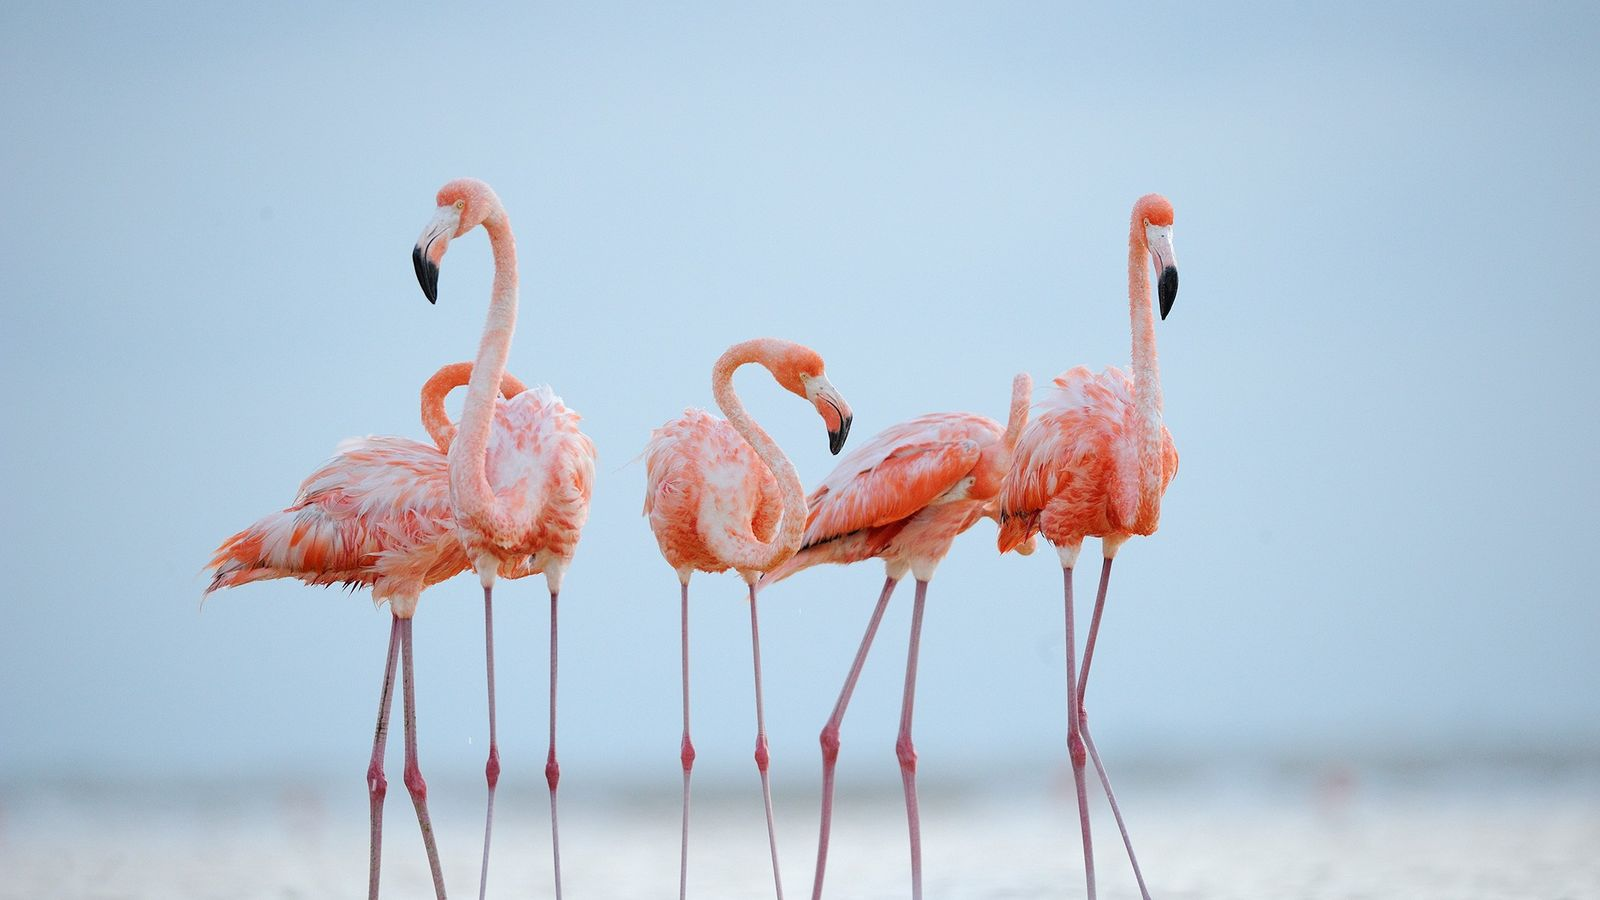 Caribbean flamingos preen in the evening light. The birds can live up to 50 years.